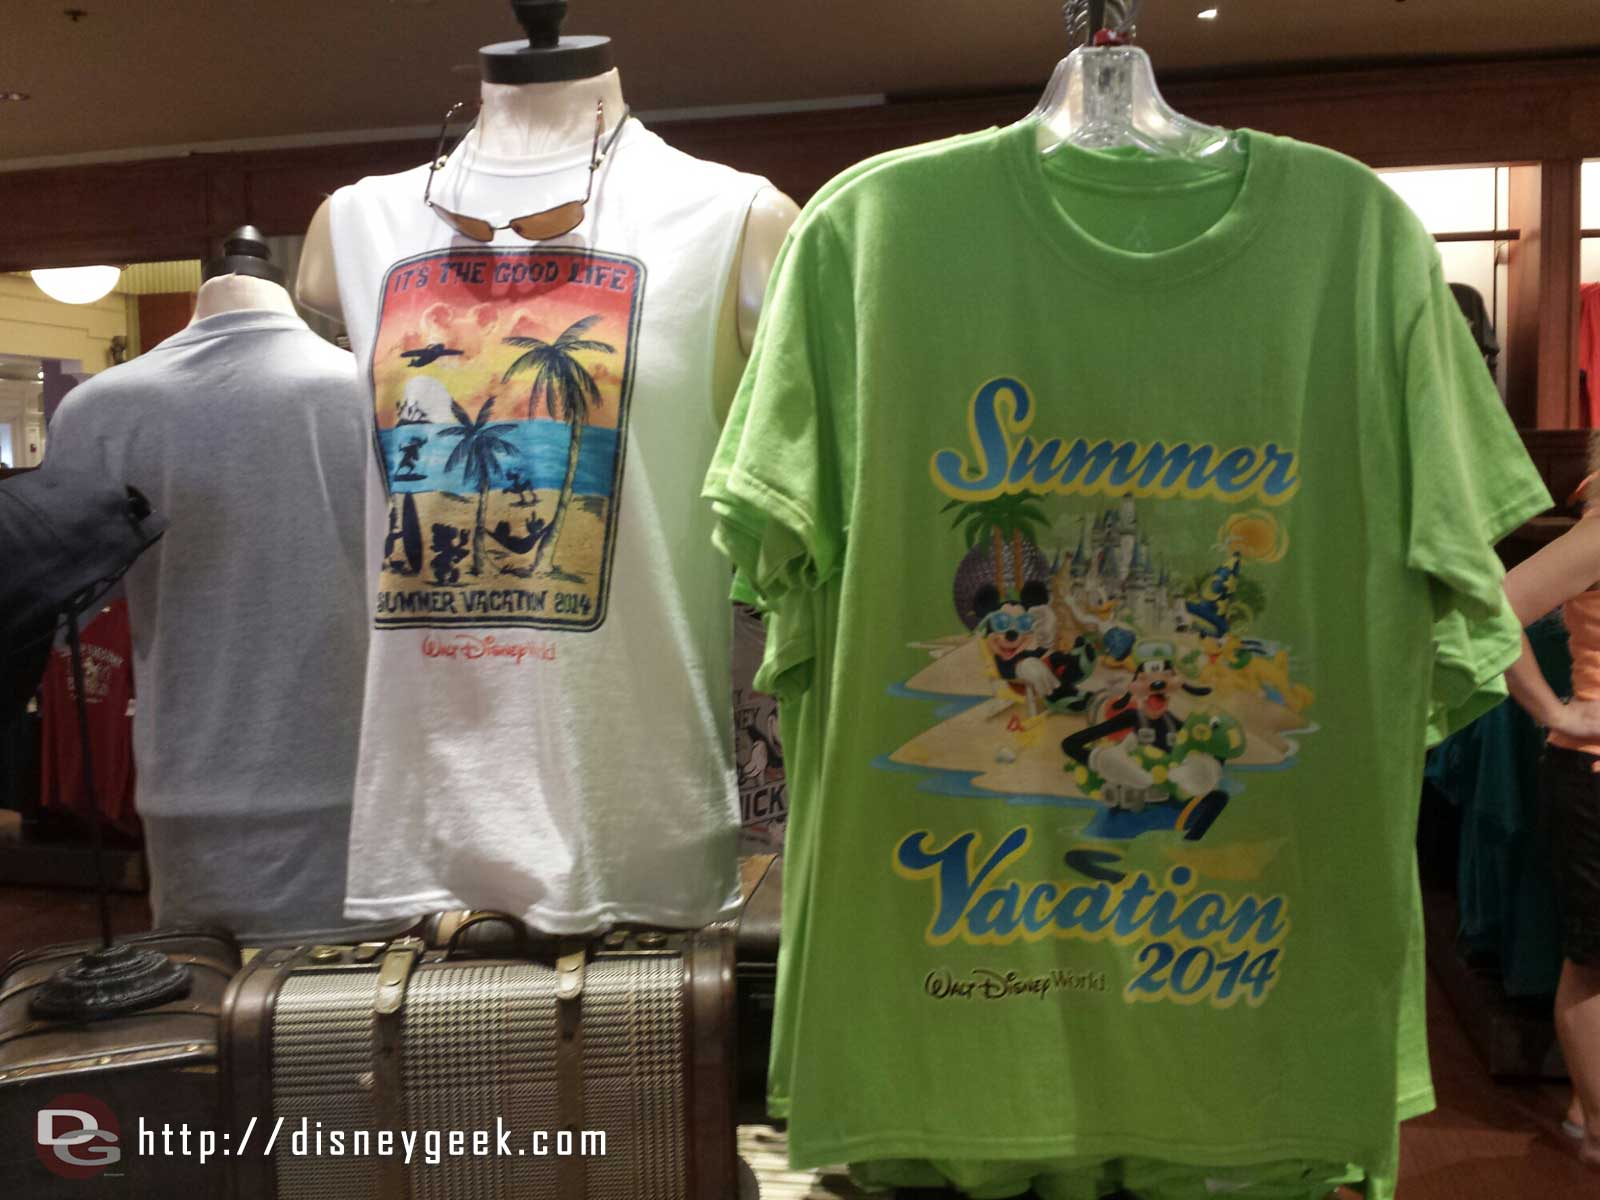 Summer vacation merchandise in the shops already